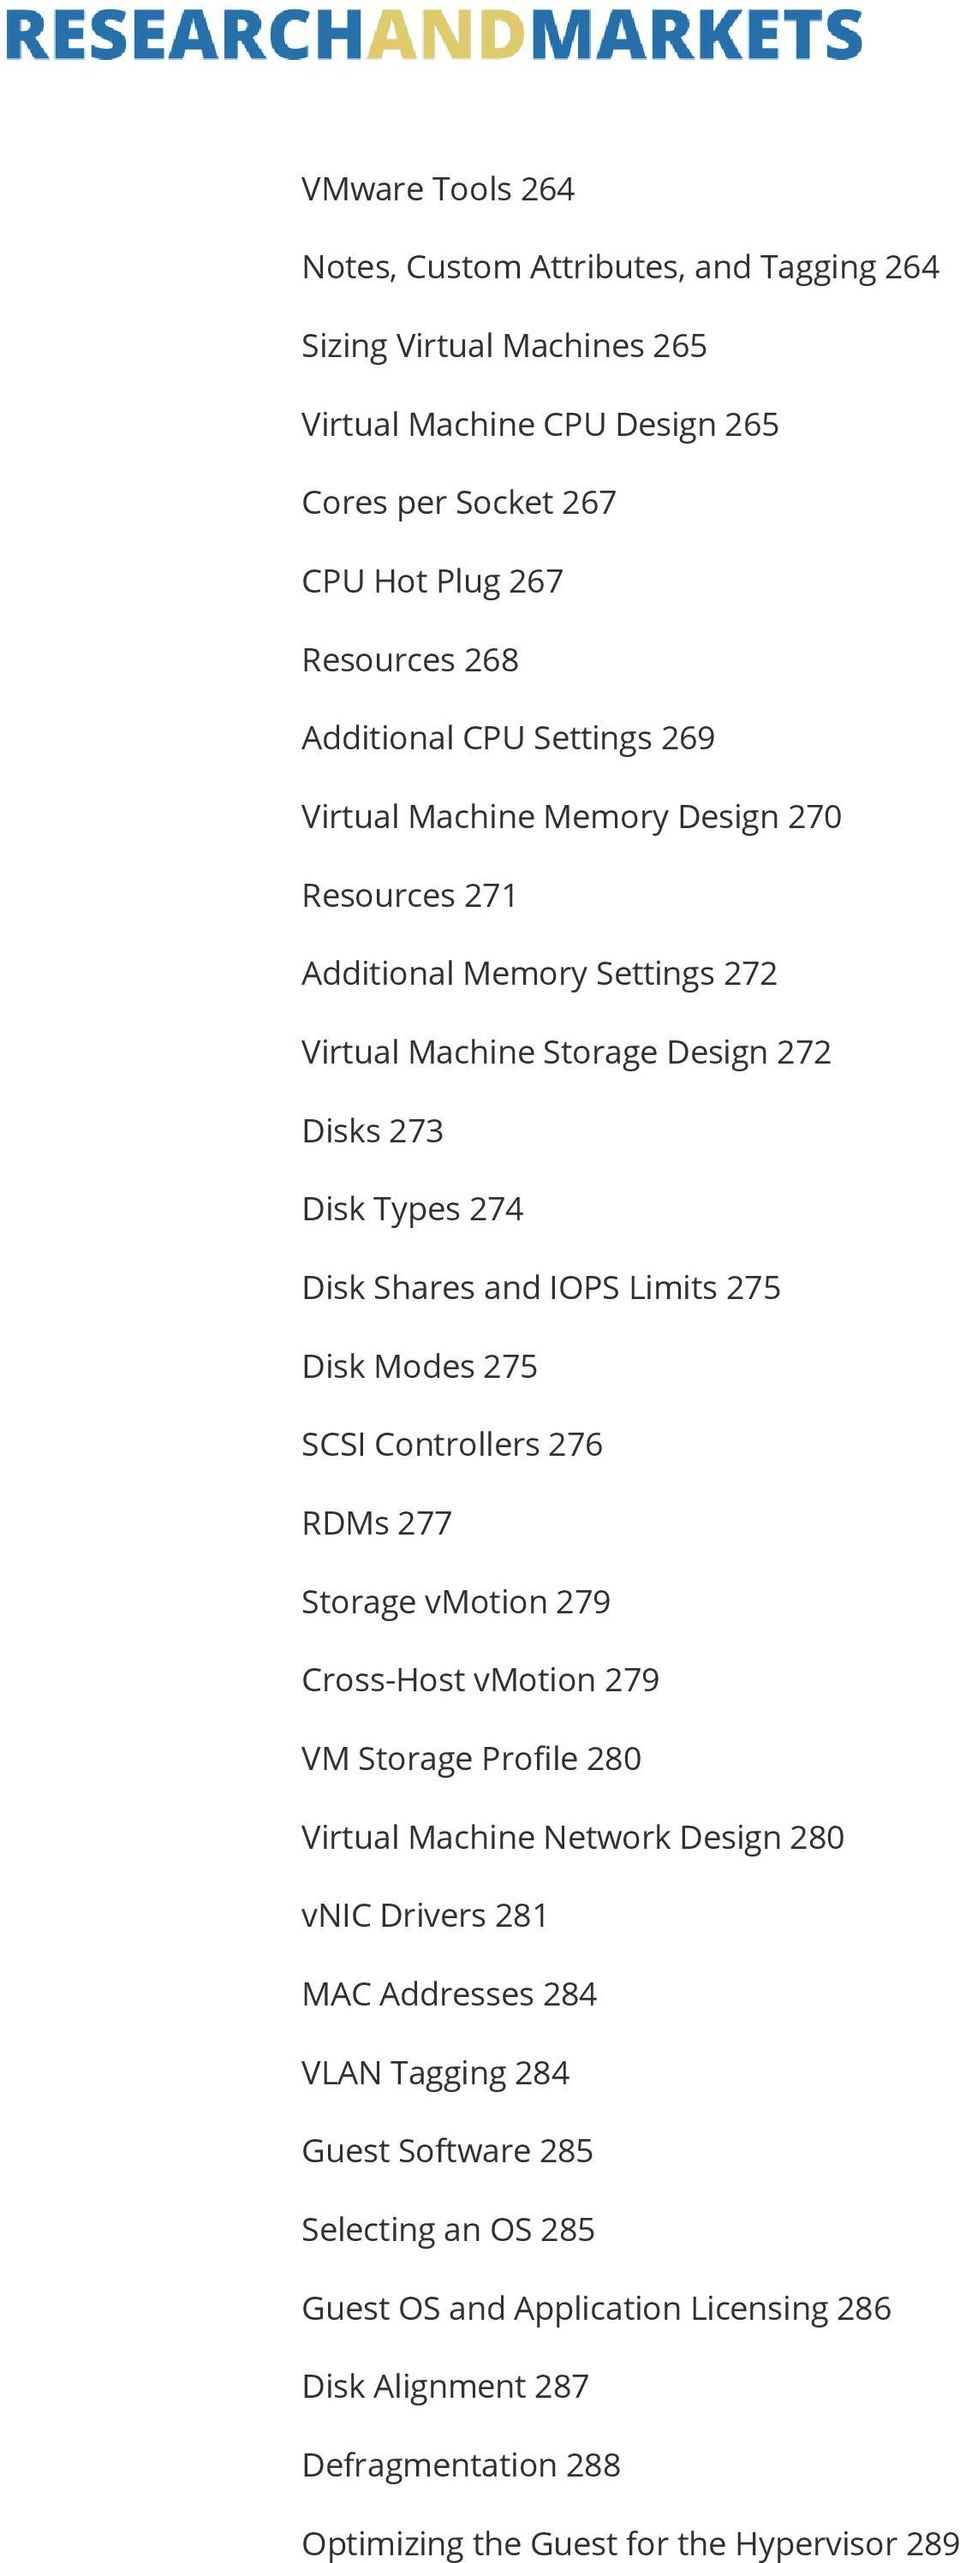 Limits 275 Disk Modes 275 SCSI Controllers 276 RDMs 277 Storage vmotion 279 Cross-Host vmotion 279 VM Storage Profile 280 Virtual Machine Network Design 280 vnic Drivers 281 MAC